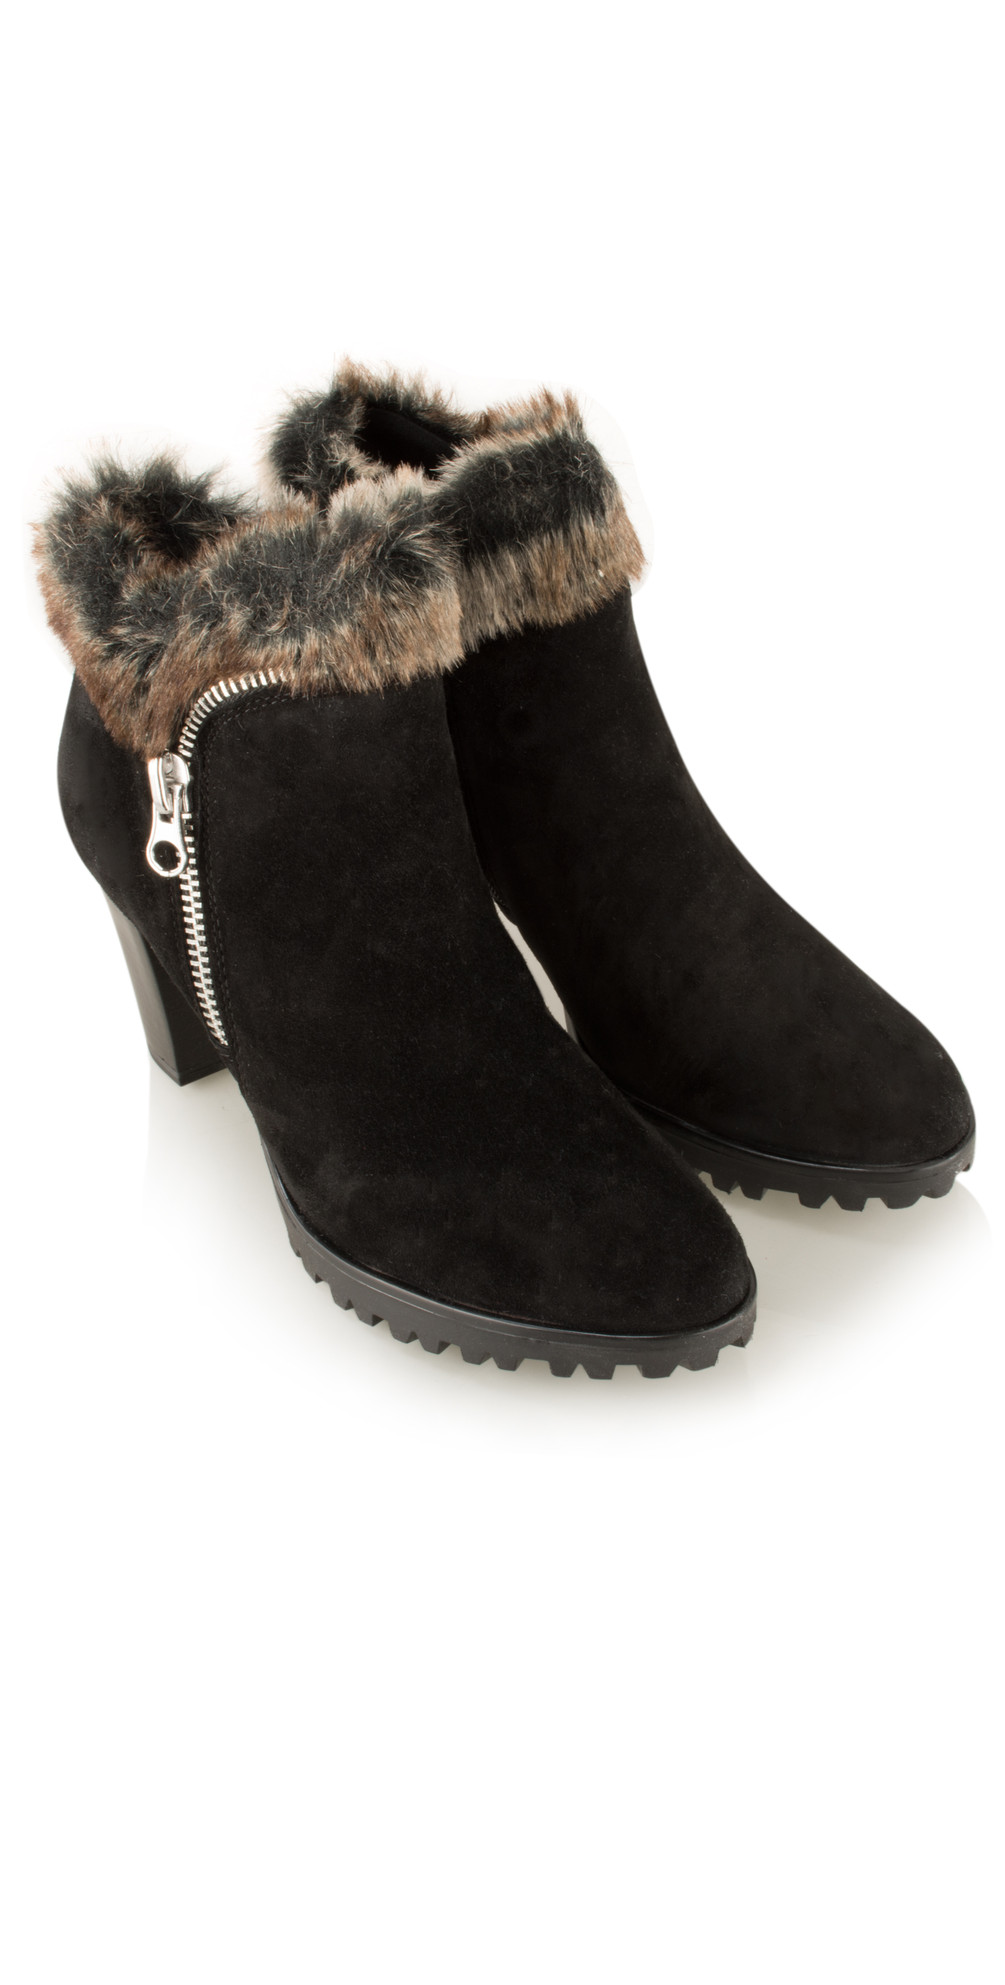 d0b47153974 Caprice Footwear Suede Fur Trim Ankle Boot in Black